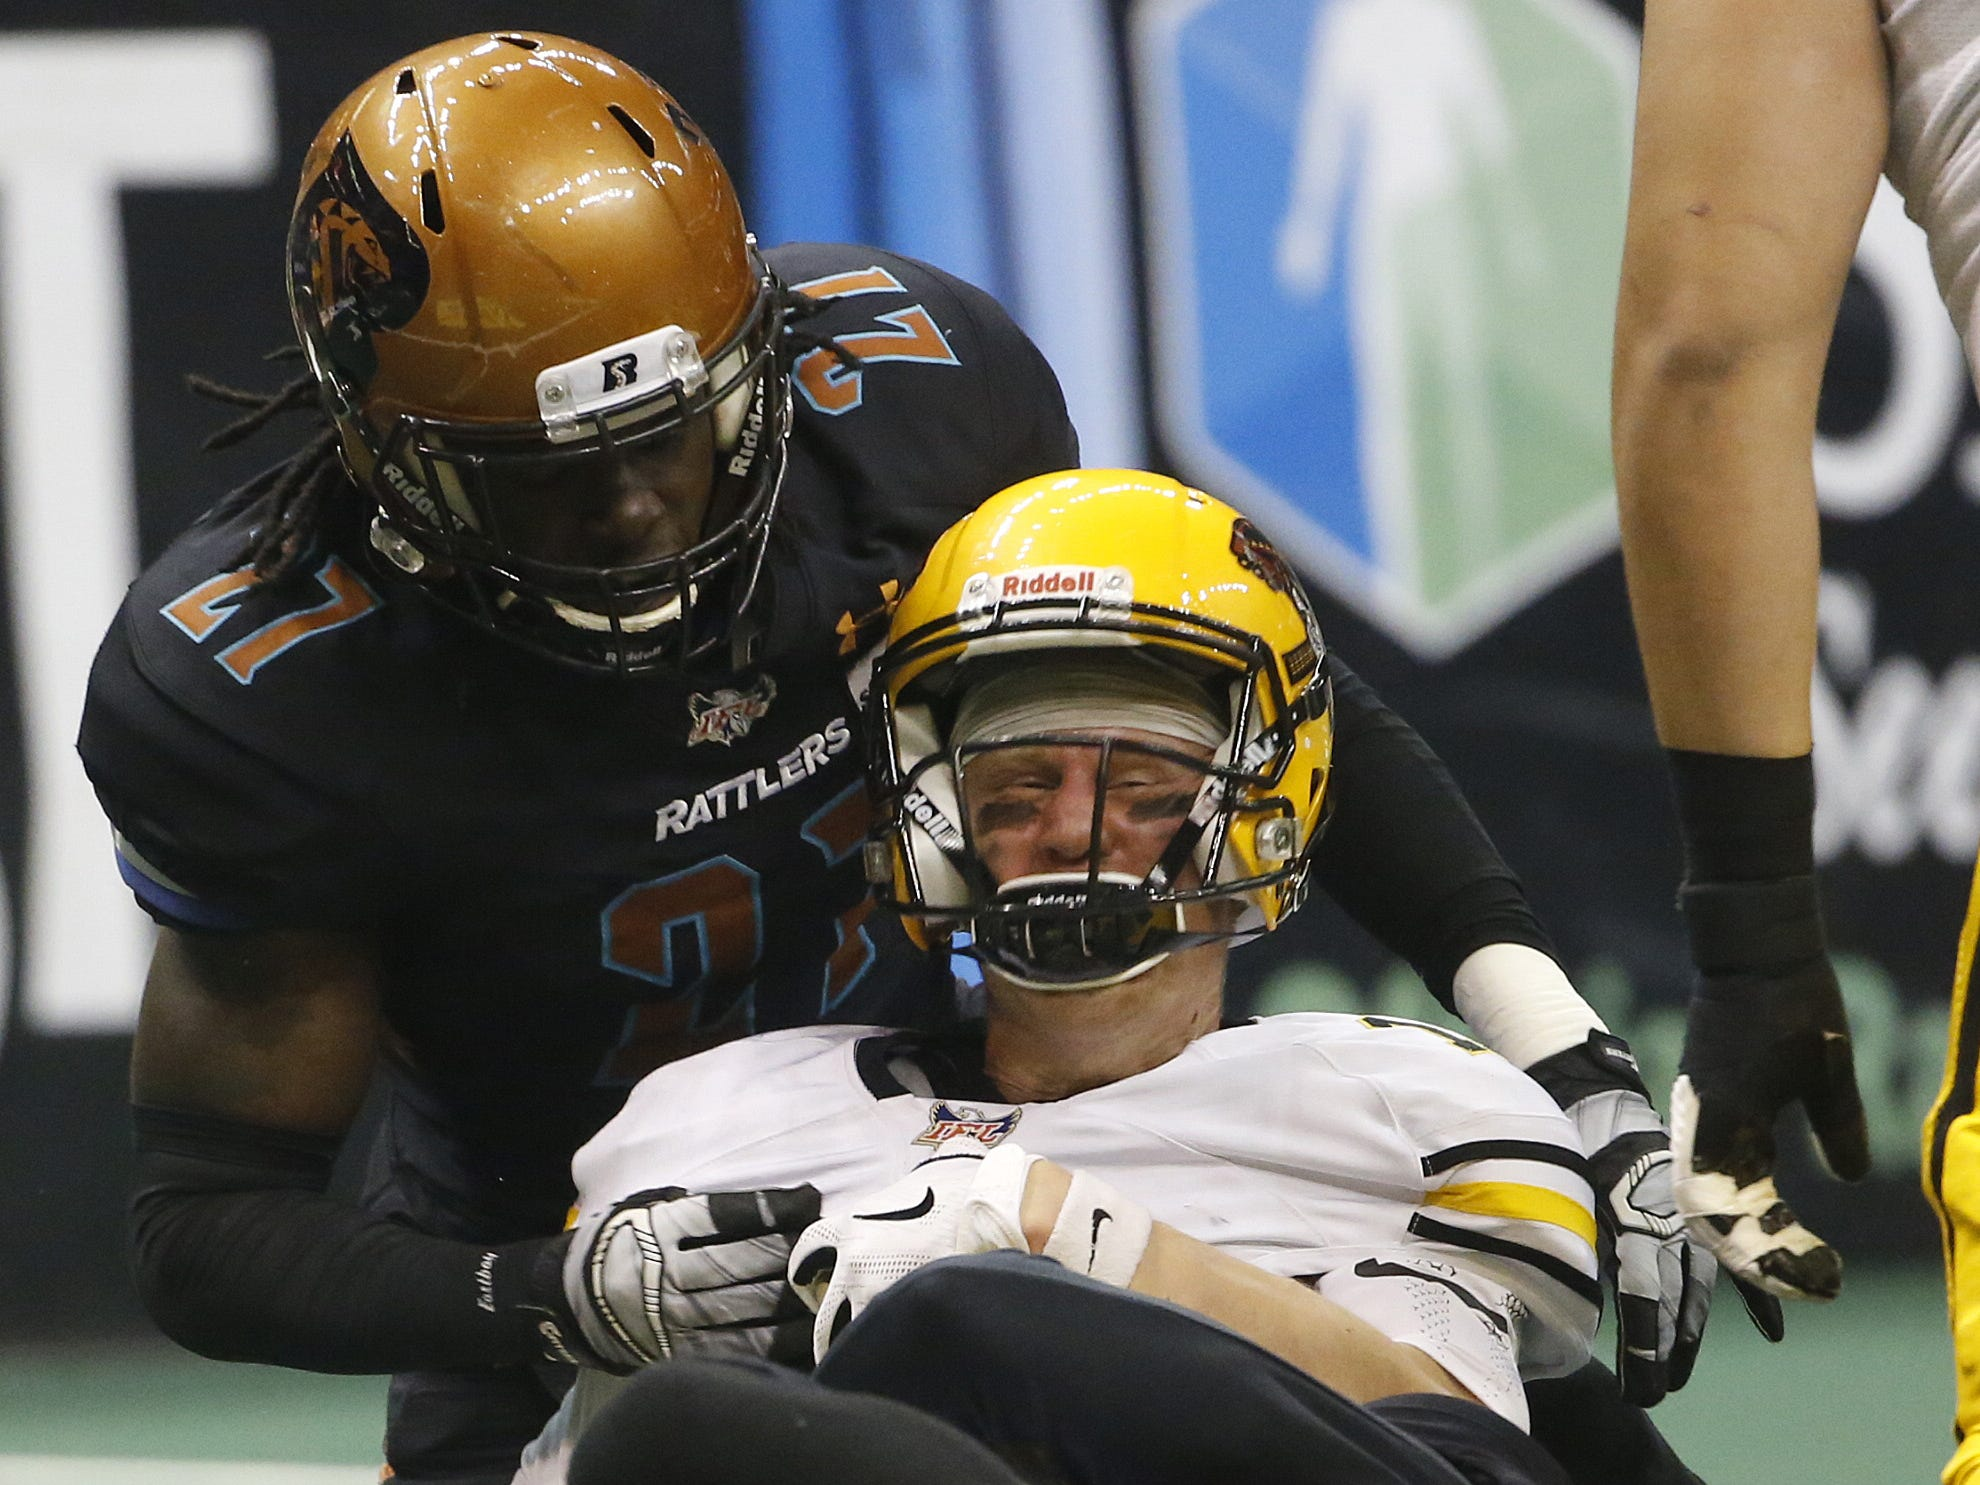 Rattlers' Dillon Winfrey (15) and and Devin Cockrell (27) tackle Sugar Skulls quarterback Matt Behrendt (16) during the first half at Talking Stick Resort Arena in Phoenix, Ariz. on March 16, 2019.